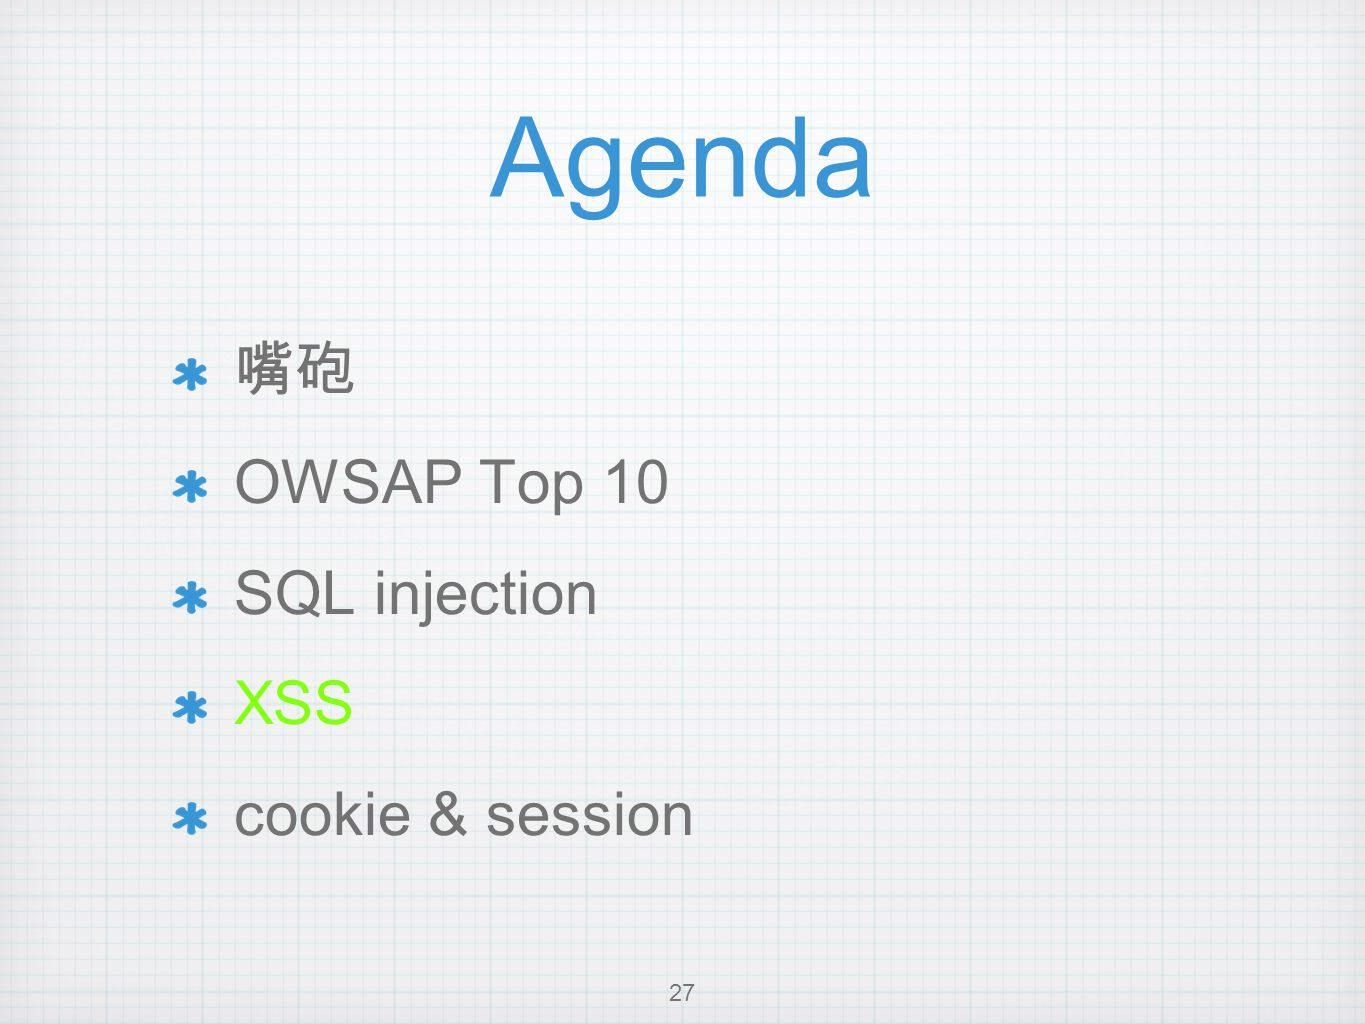 Agenda 嘴砲 OWSAP Top 10 SQL injection XSS cookie & session 27